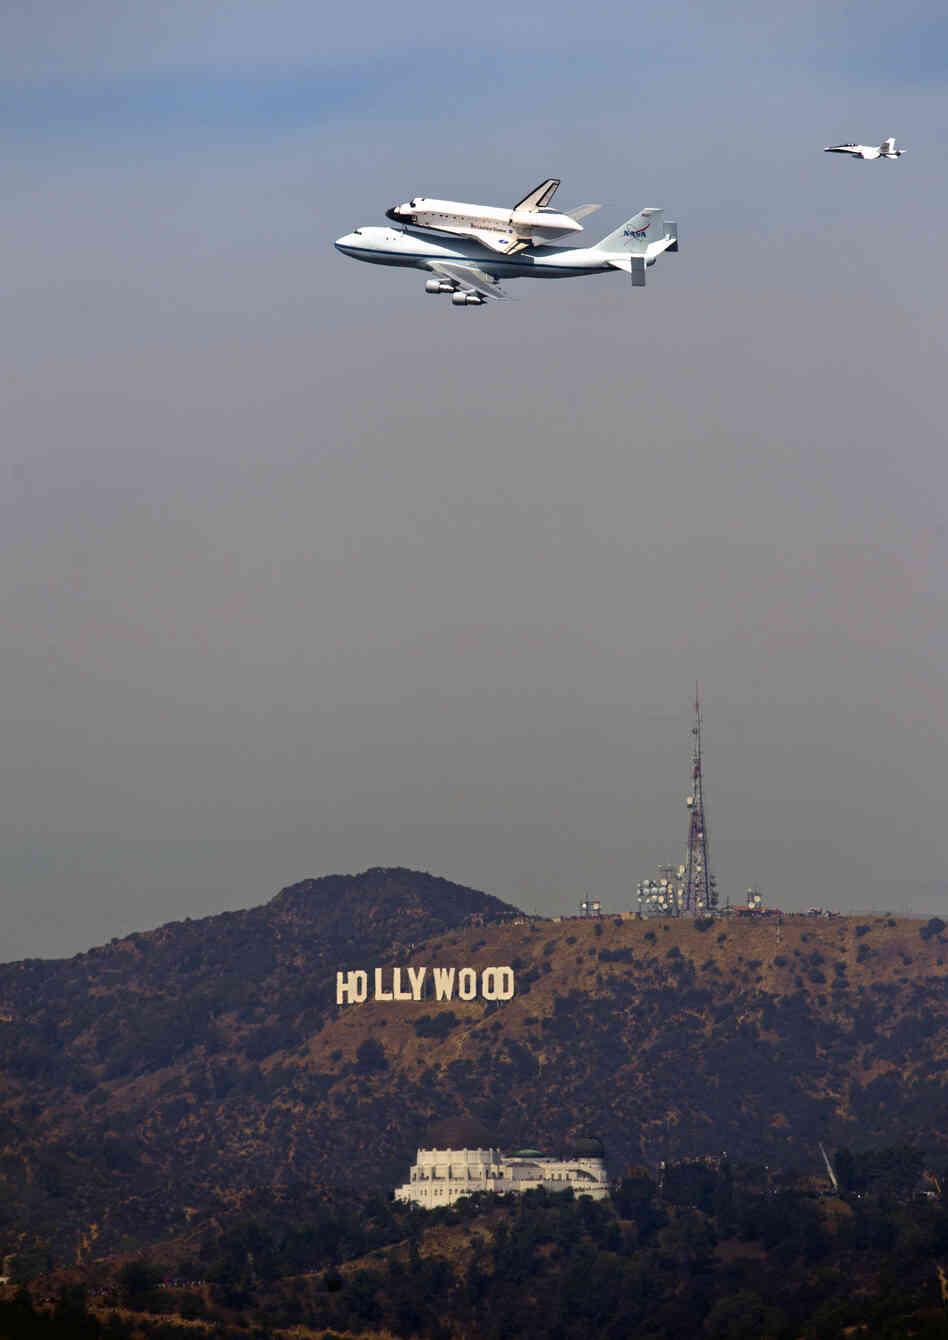 The Space Shuttle Endeavour passes the Hollyw